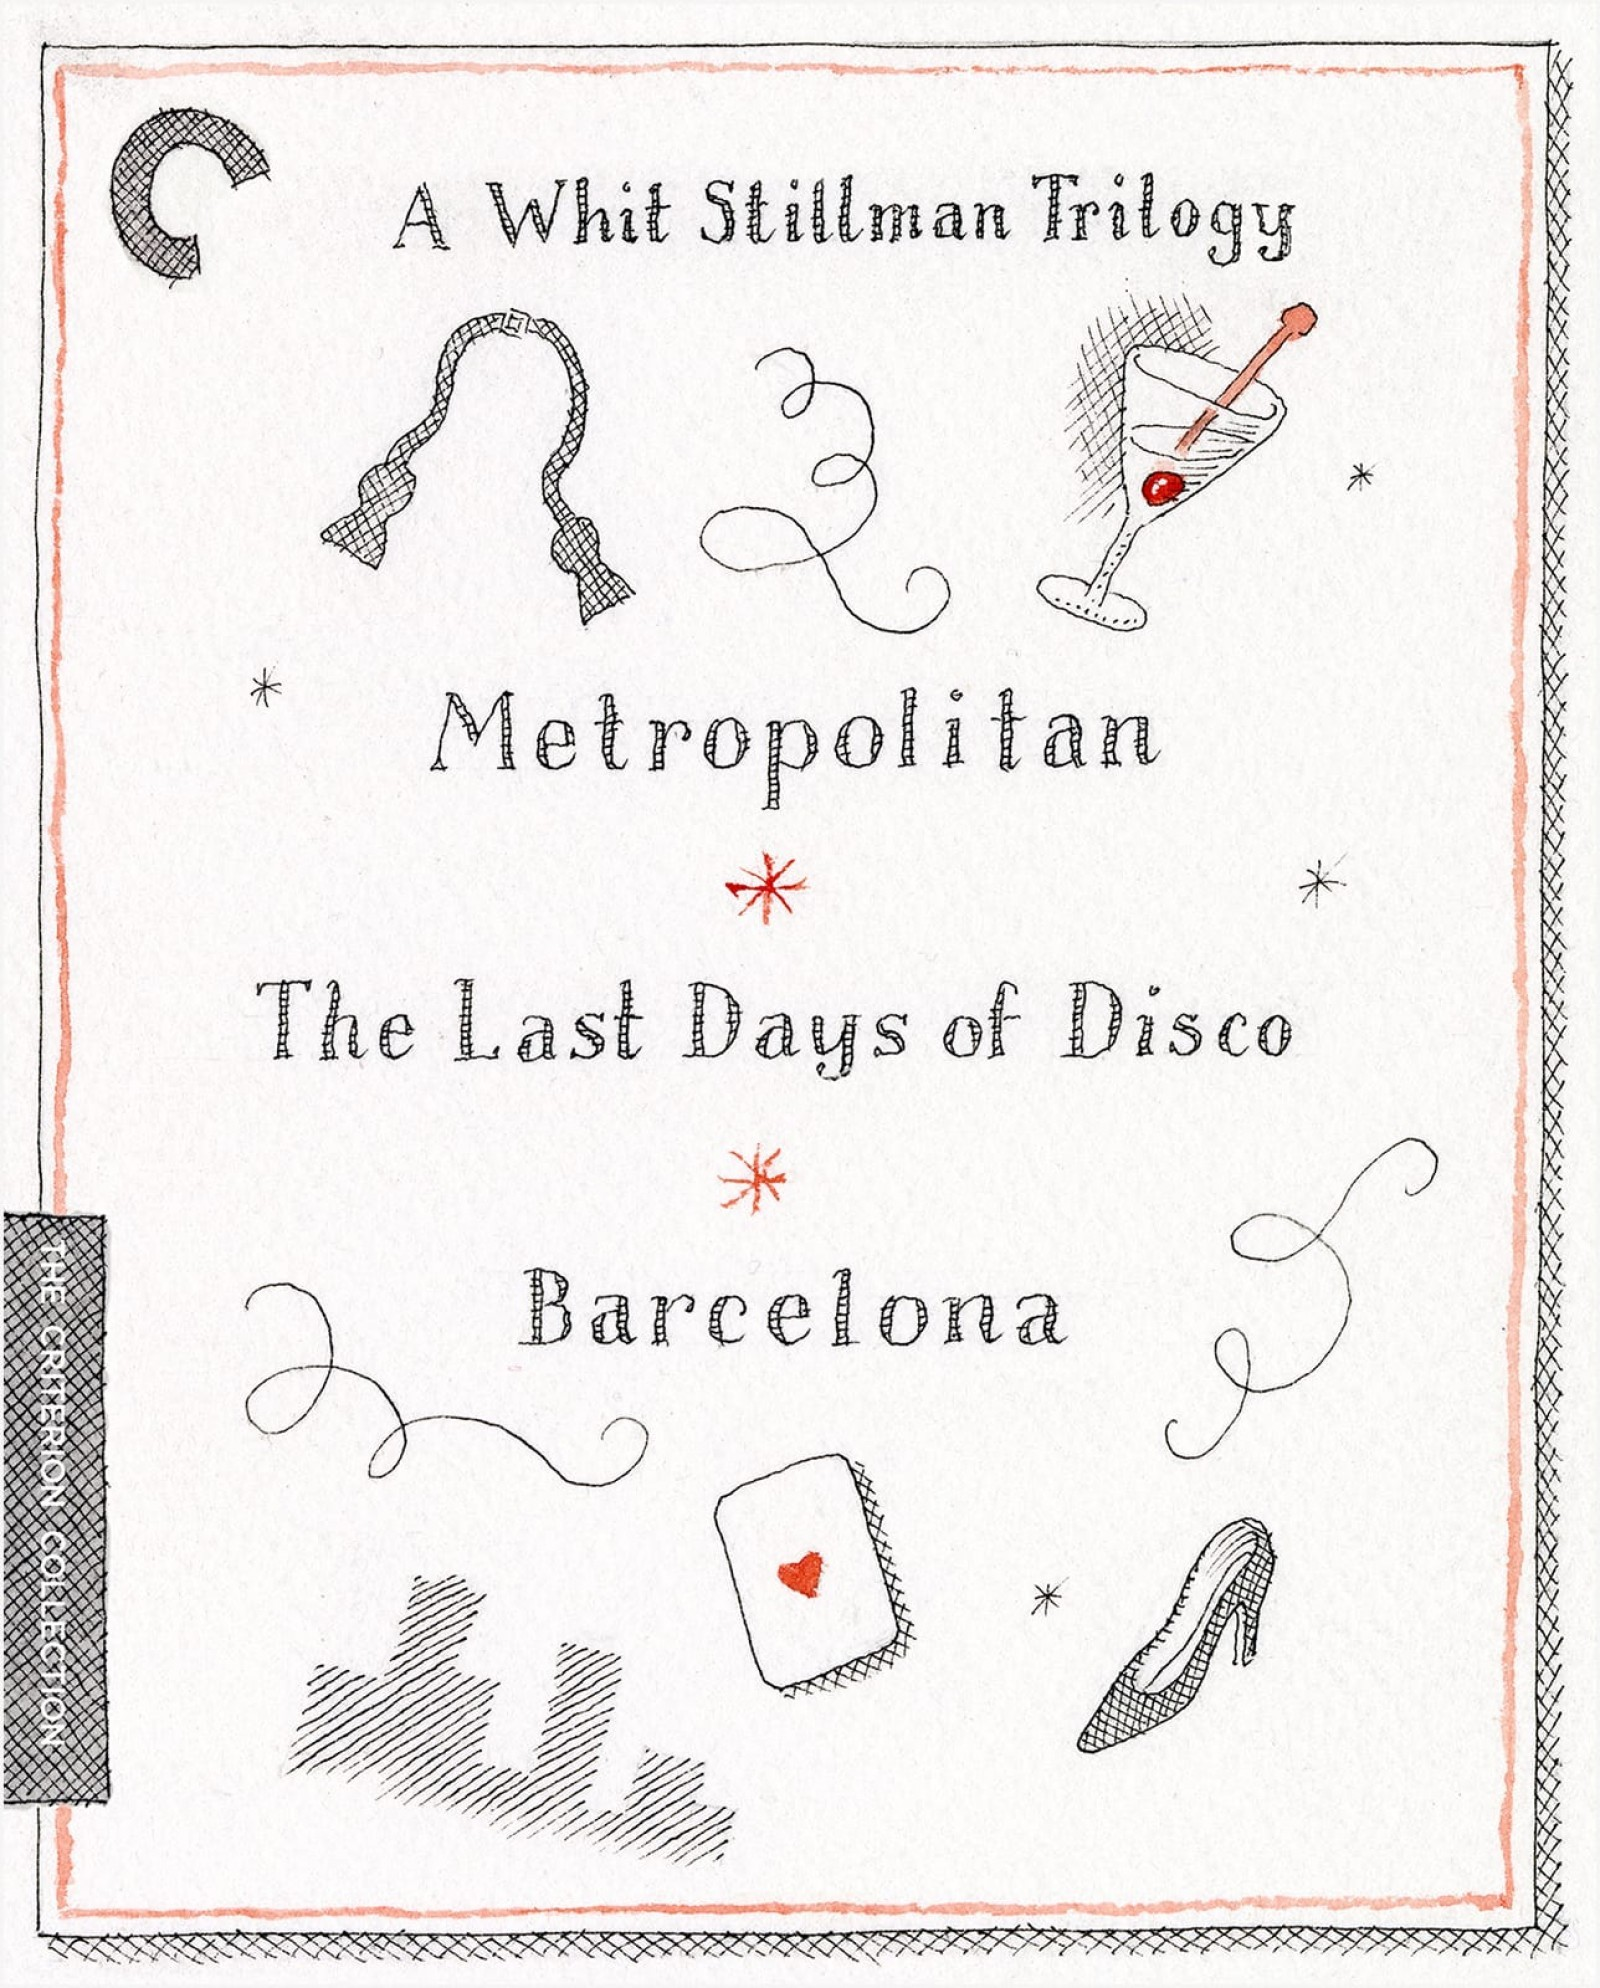 A Whit Stillman Trilogy: Metropolitan / Barcelona / The Last Days of Disco (1990-1998) The Criterion Collection Blu-ray